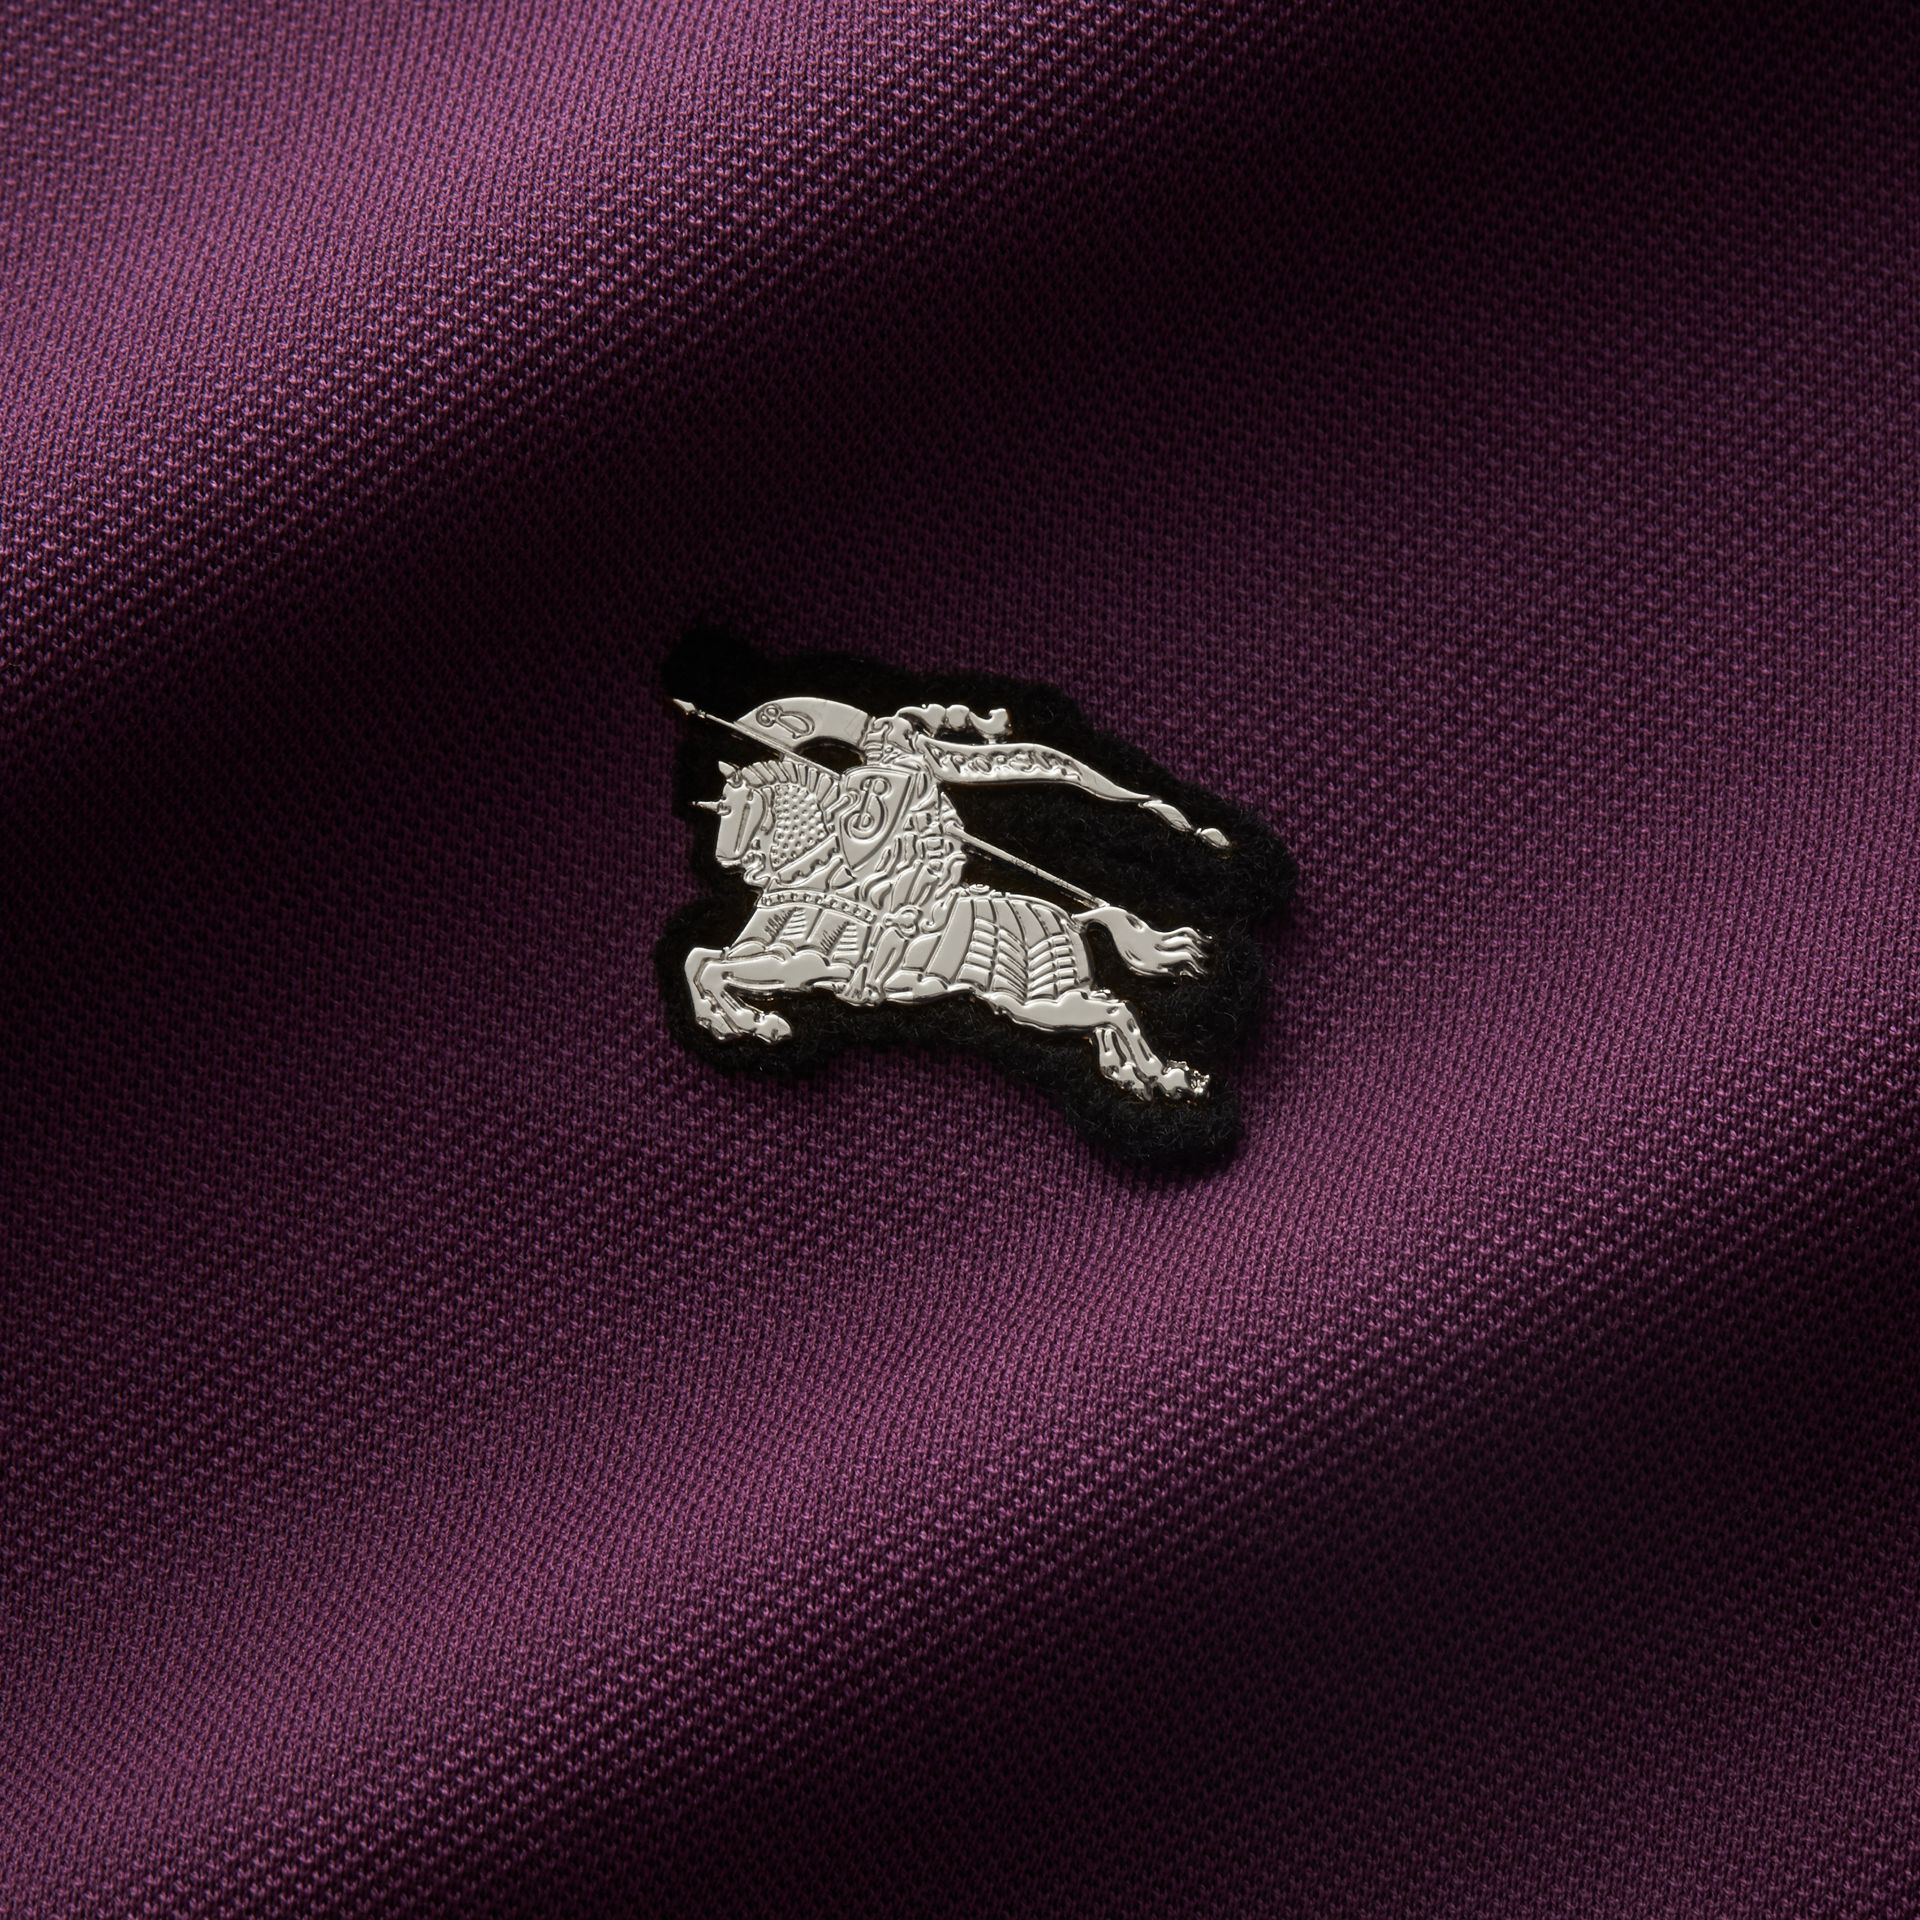 Cotton Piqué Polo Shirt in Heather - Men | Burberry Australia - gallery image 2